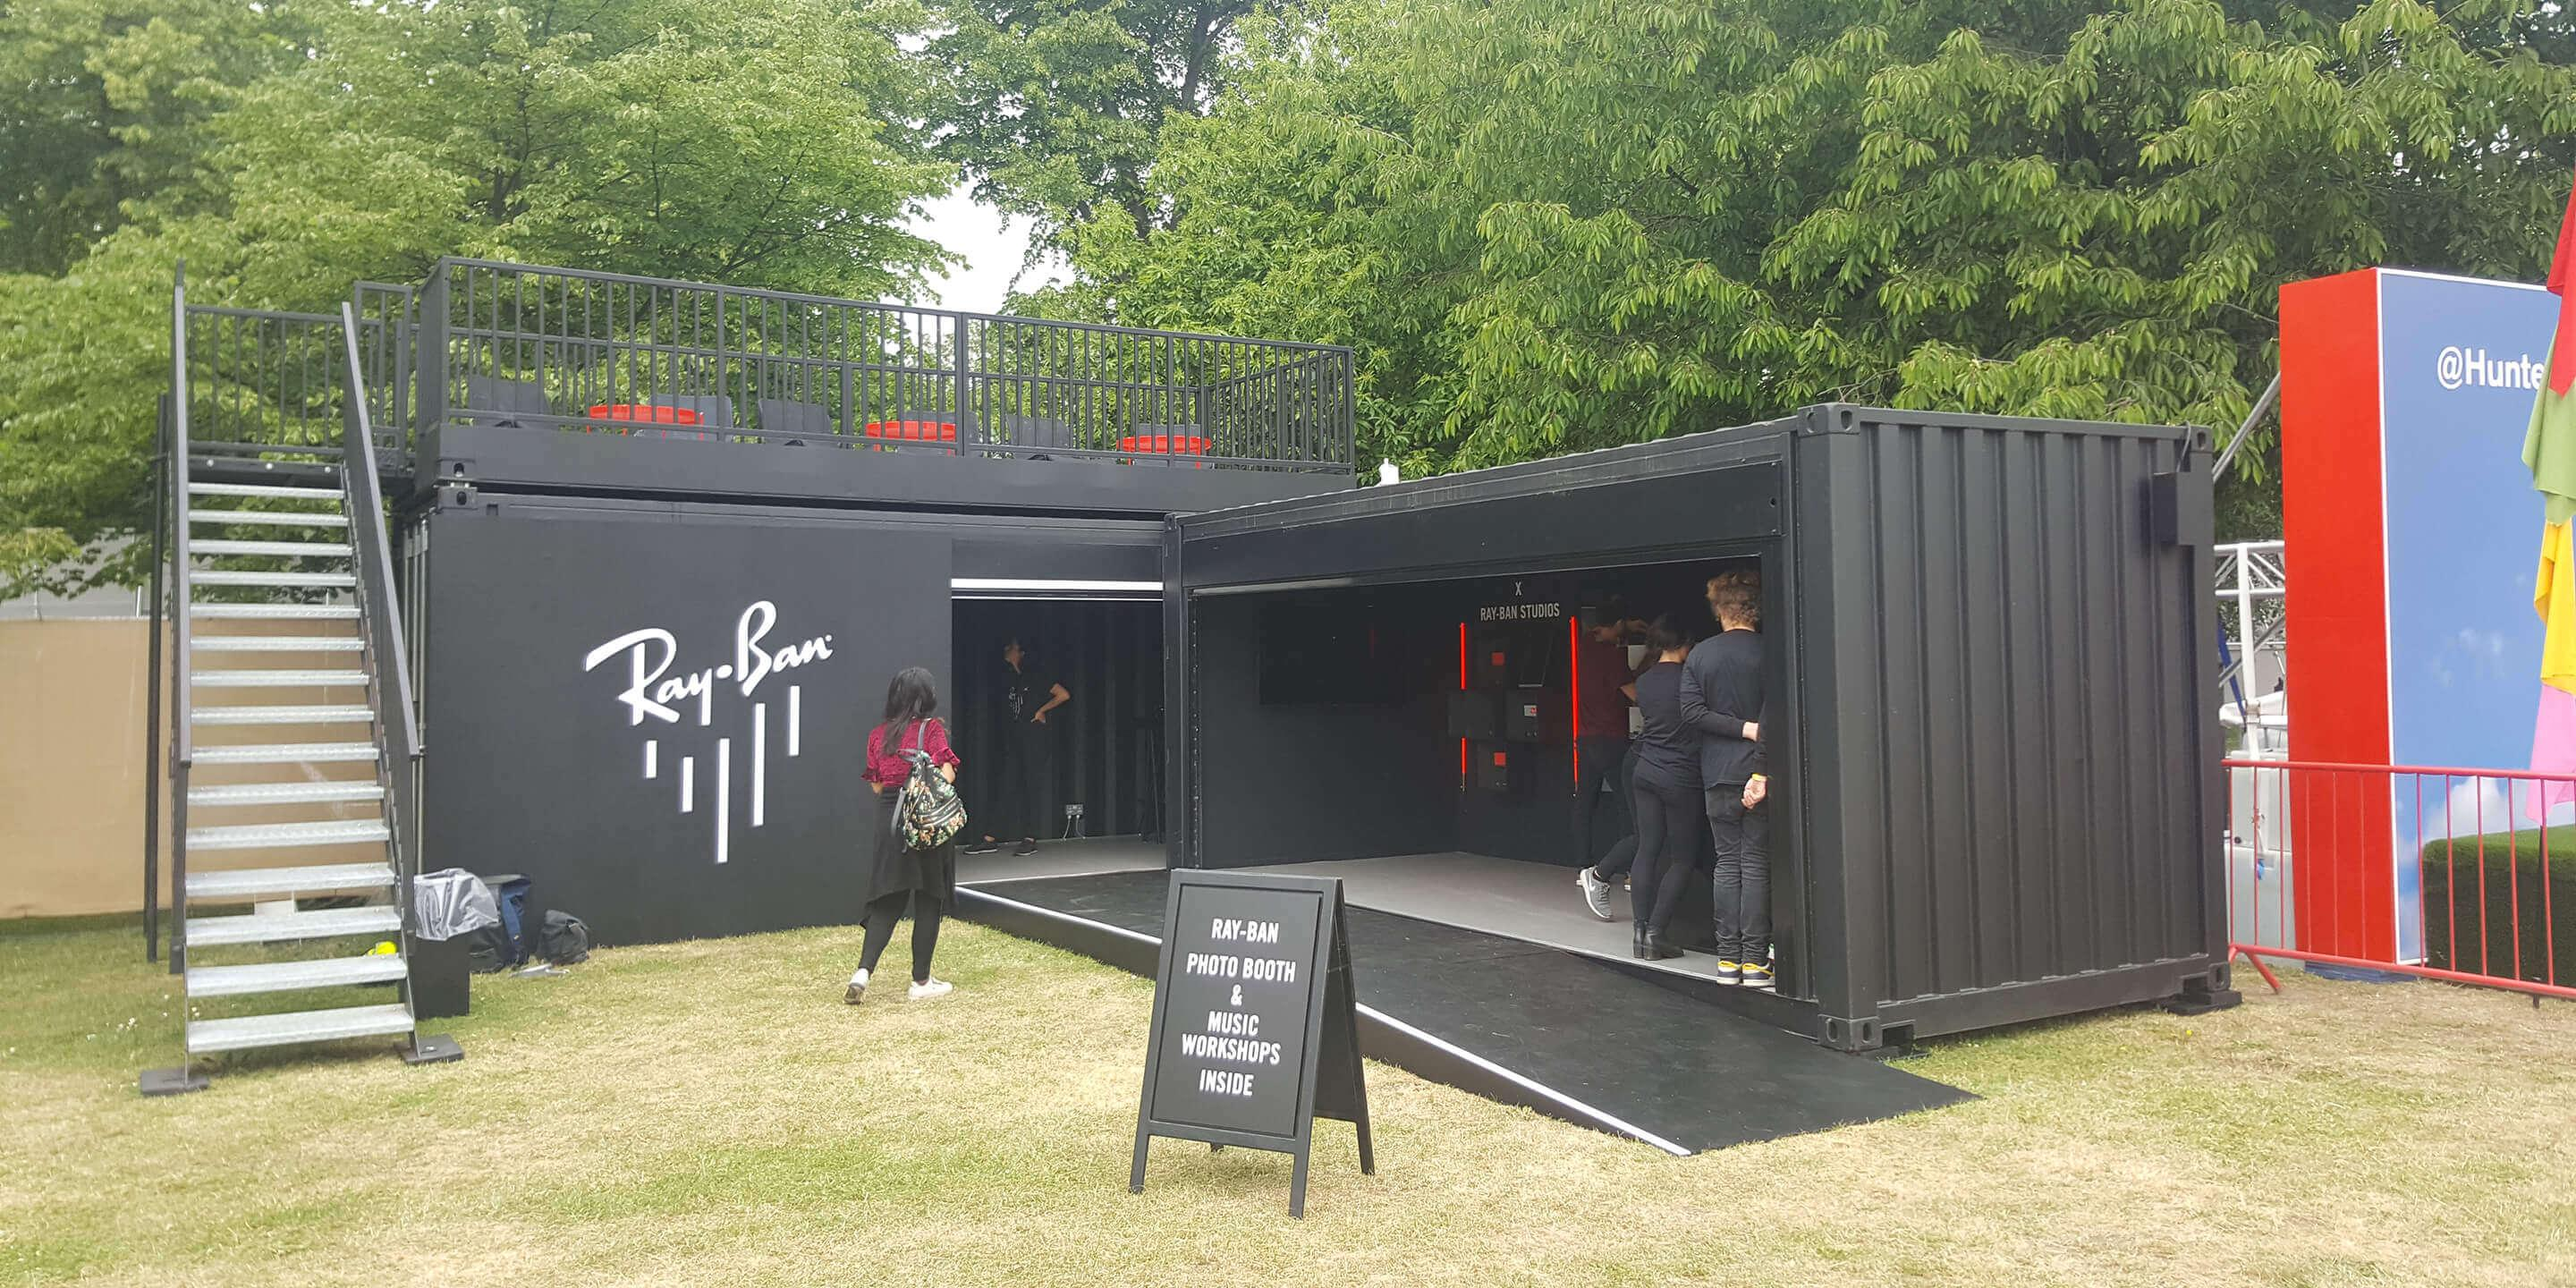 Event Shipping Containers: Statement for Ray-Ban Activation